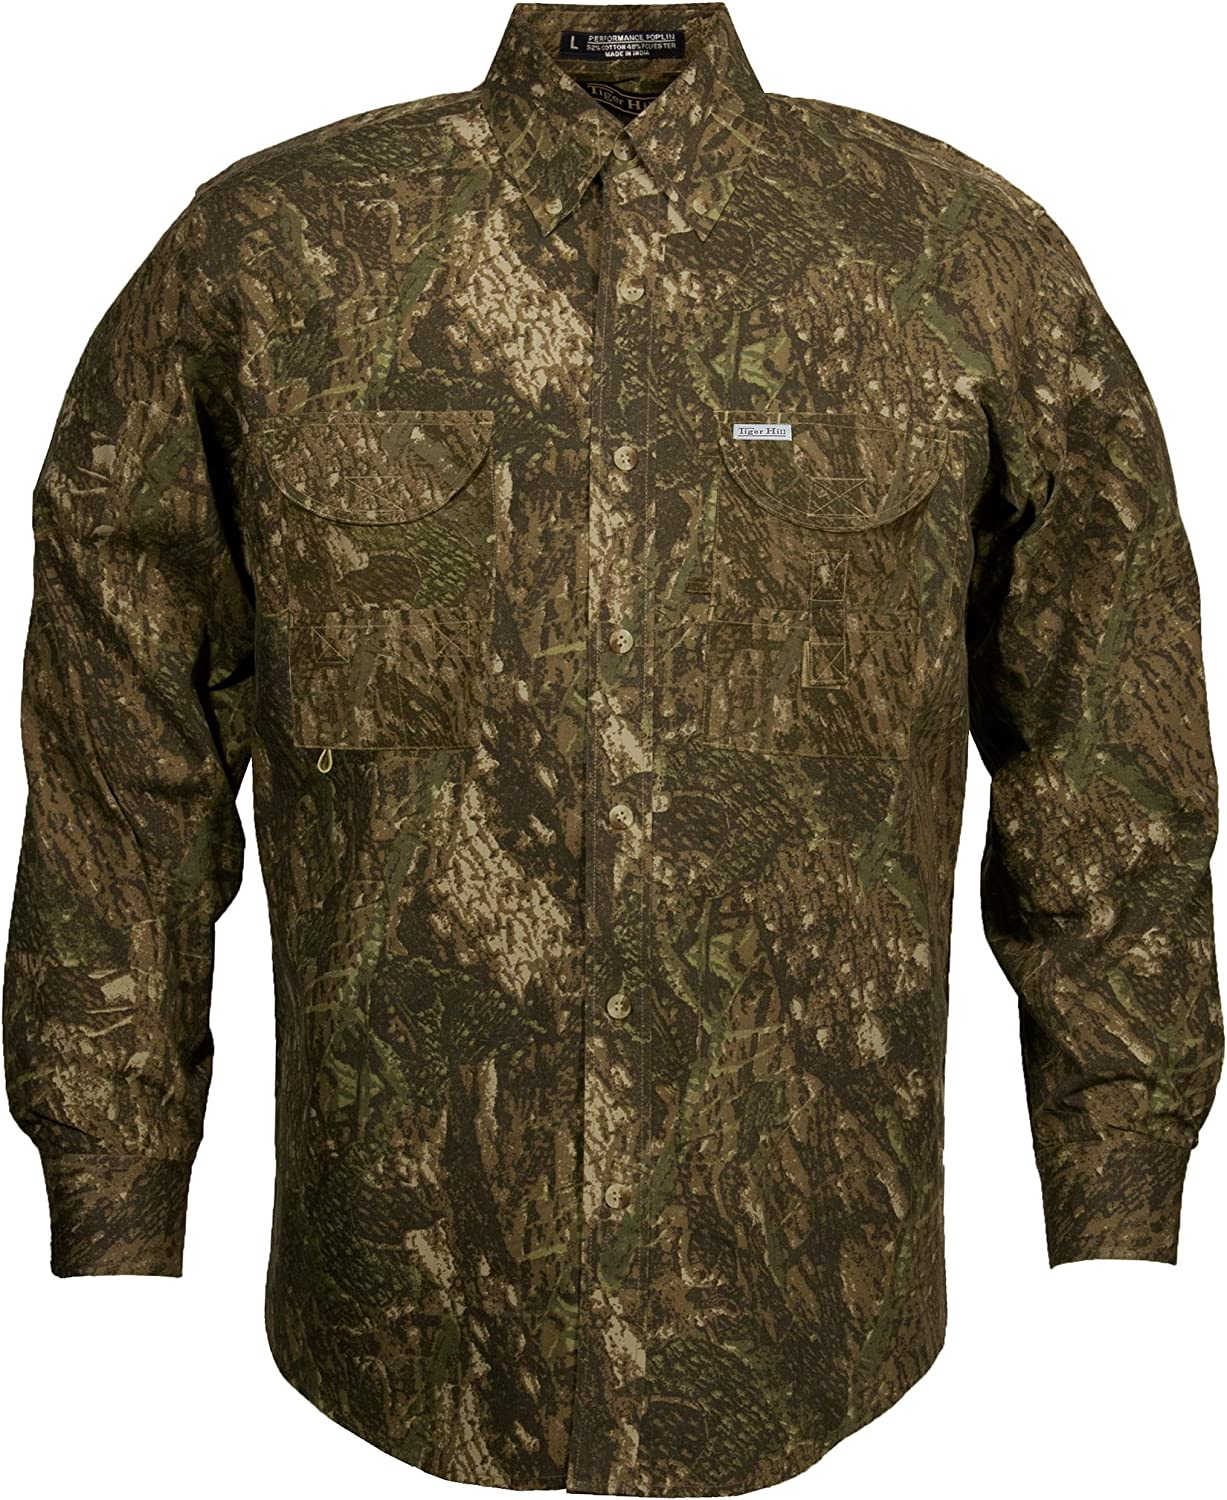 Tiger Hill Men's Camouflage Fishing Shirt Long Sleeves